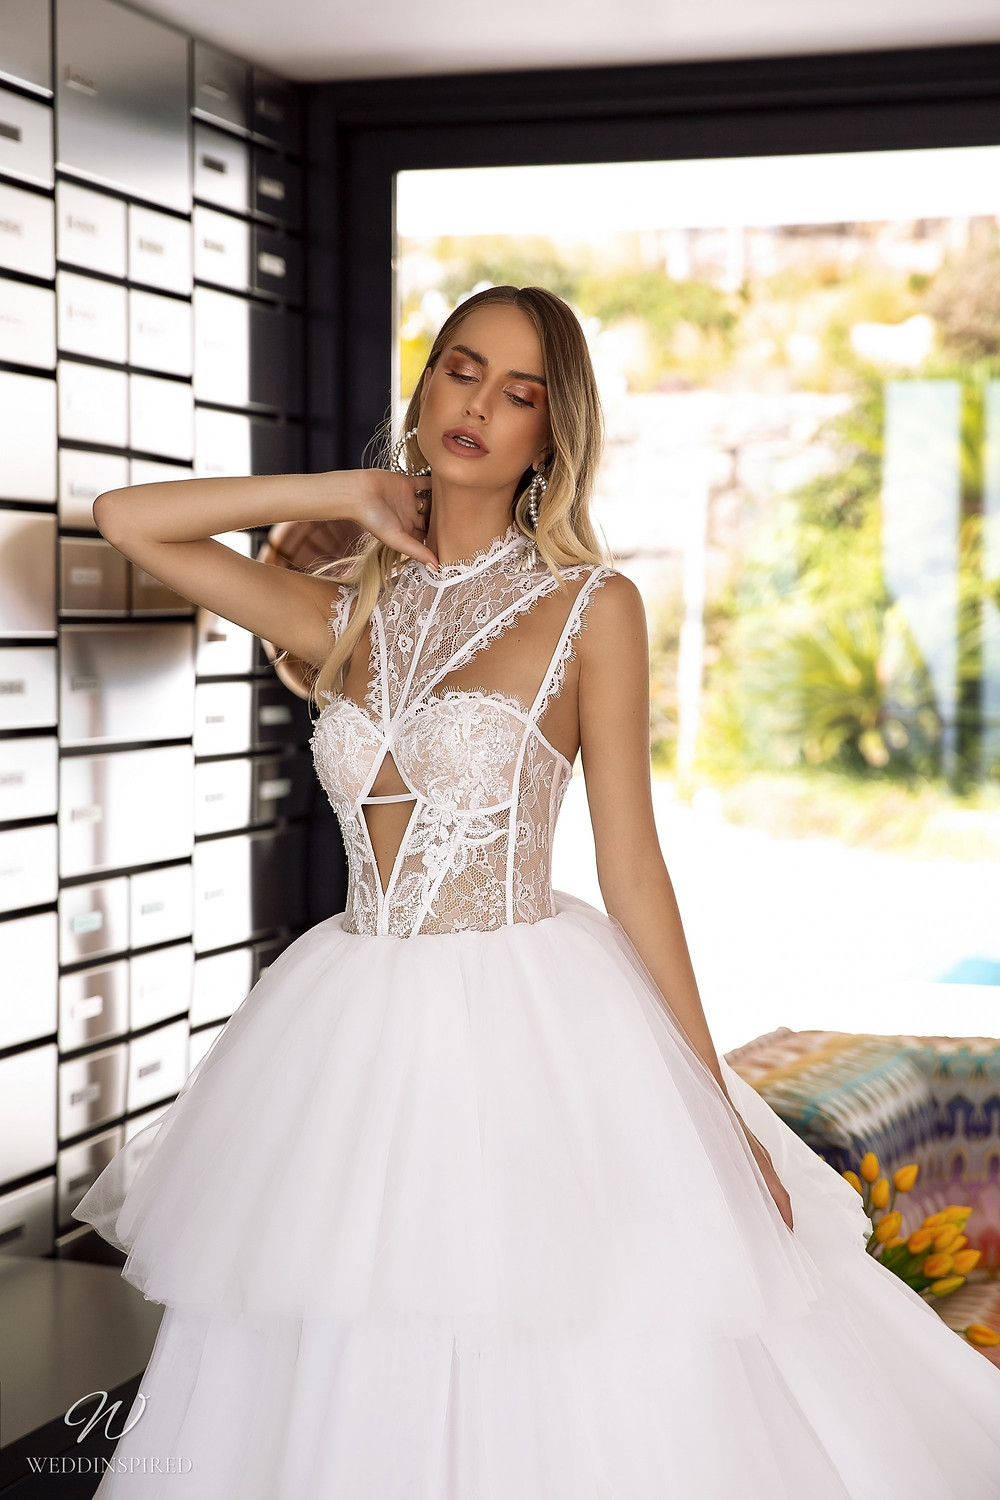 A Tina Valerdi lace and tulle ball gown wedding dress with a ruffle skirt